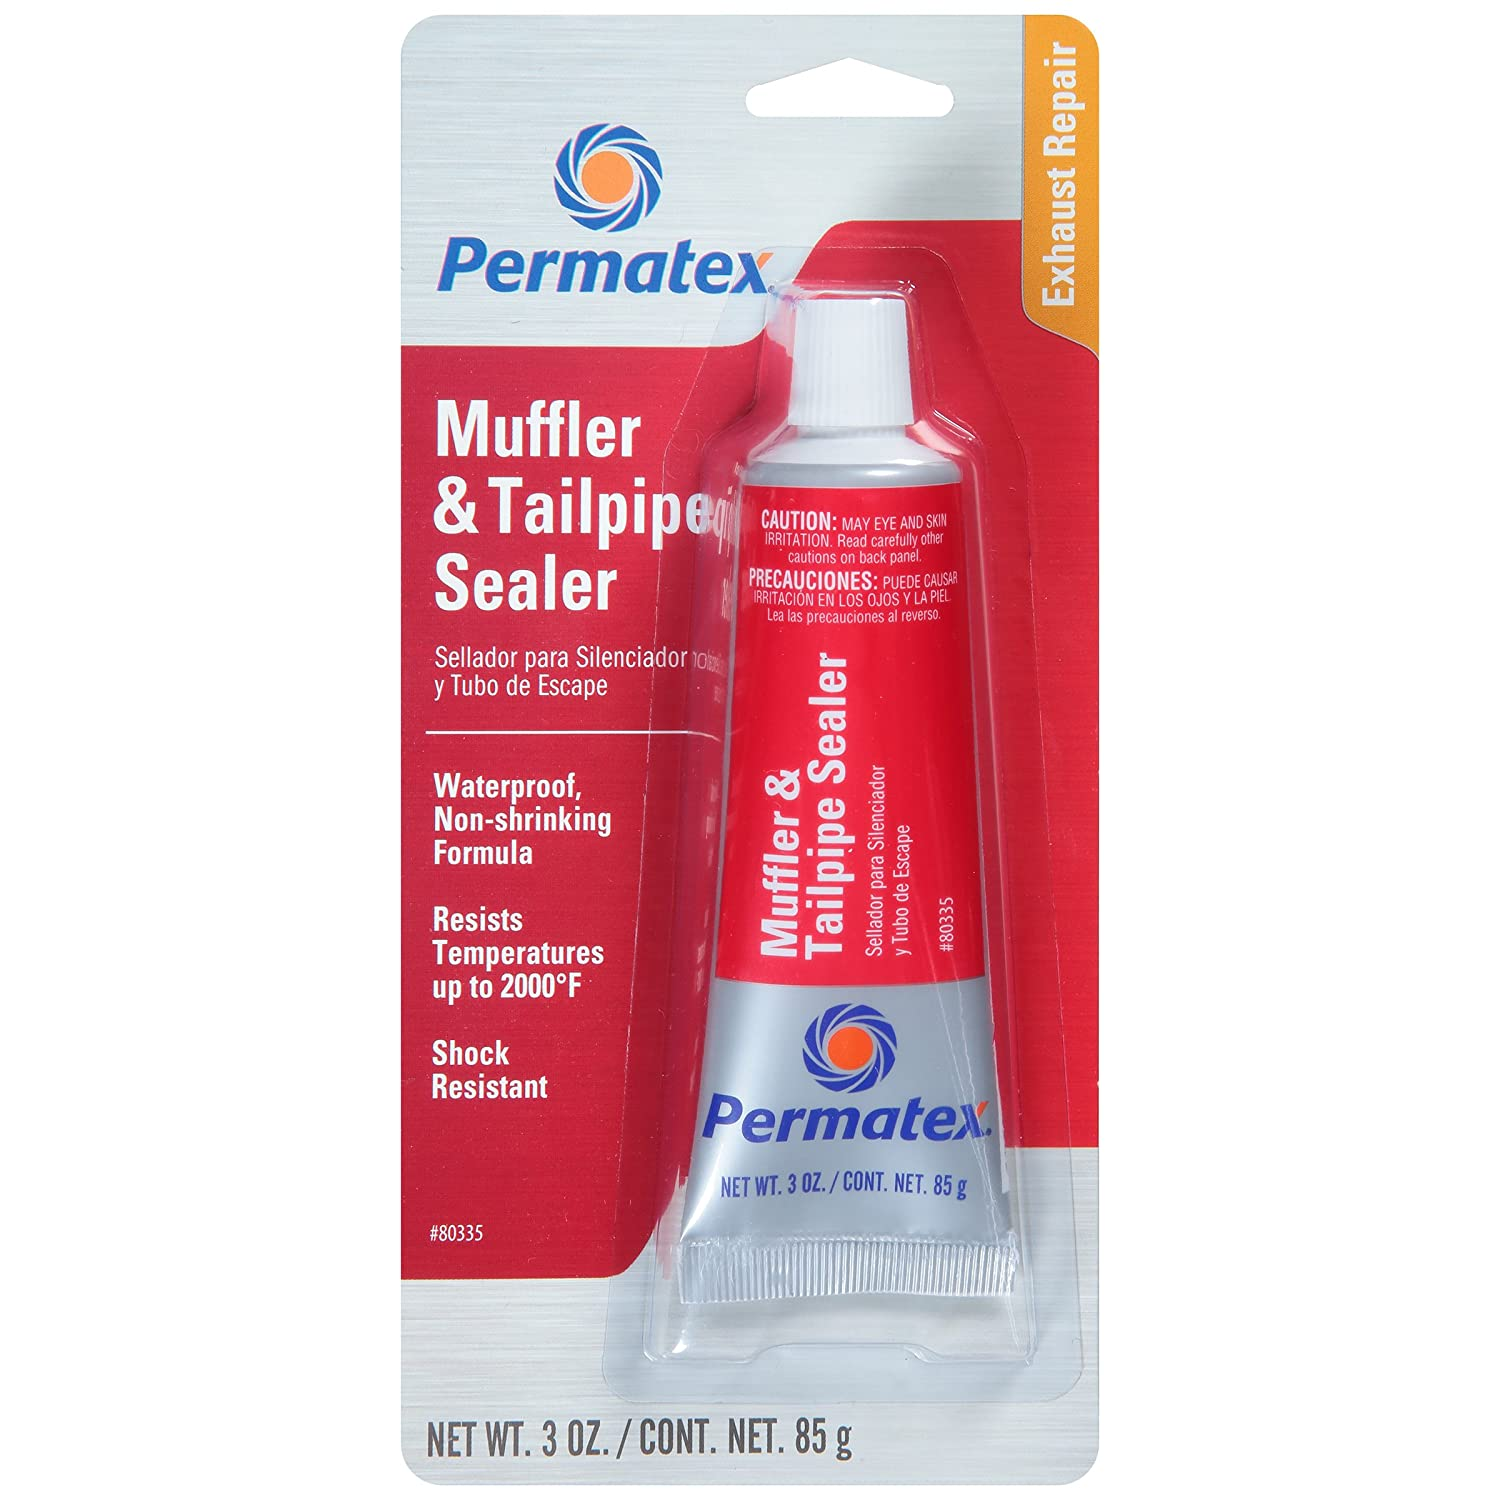 Permatex 80335 Muffler and Tailpipe Sealer, 3 oz : Amazon ca: Automotive